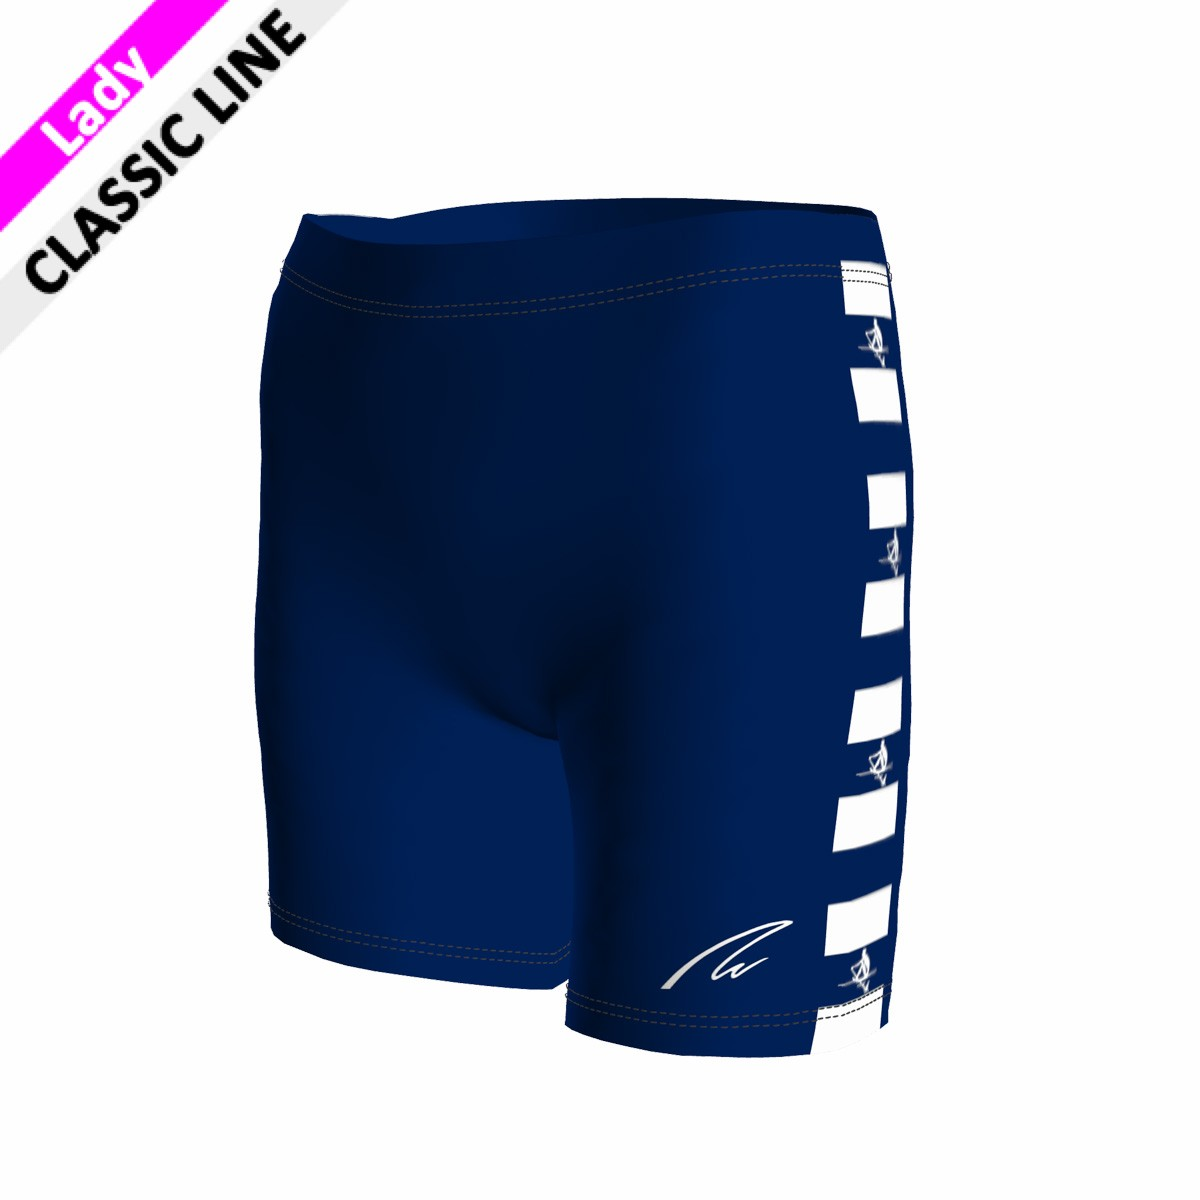 Basic Short - Tight Lady marine blau